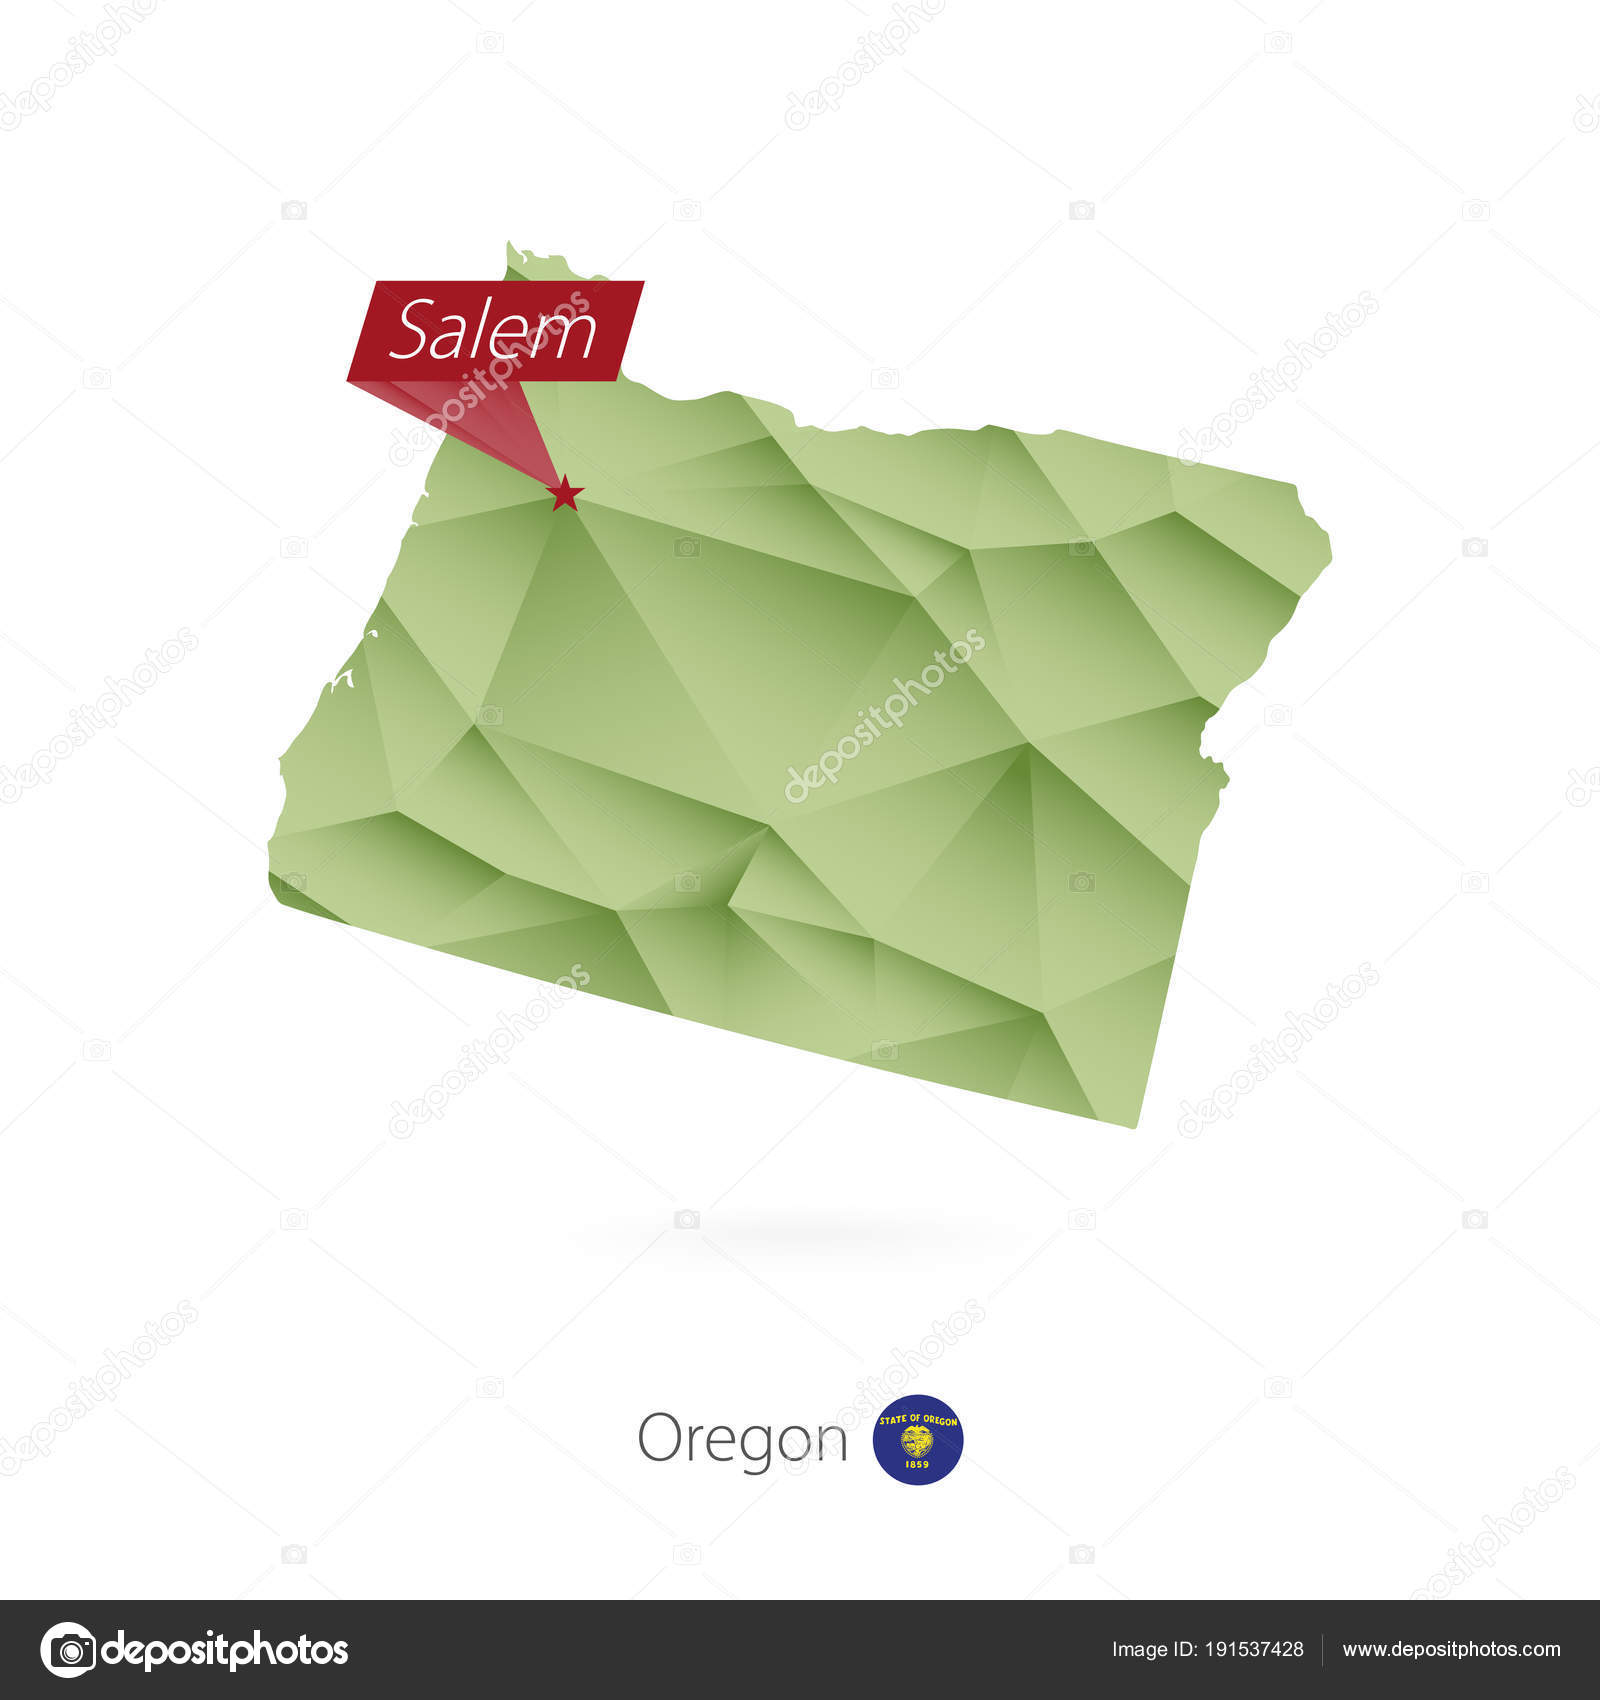 Capital Of Oregon Map.Green Gradient Low Poly Map Of Oregon With Capital Salem Stock